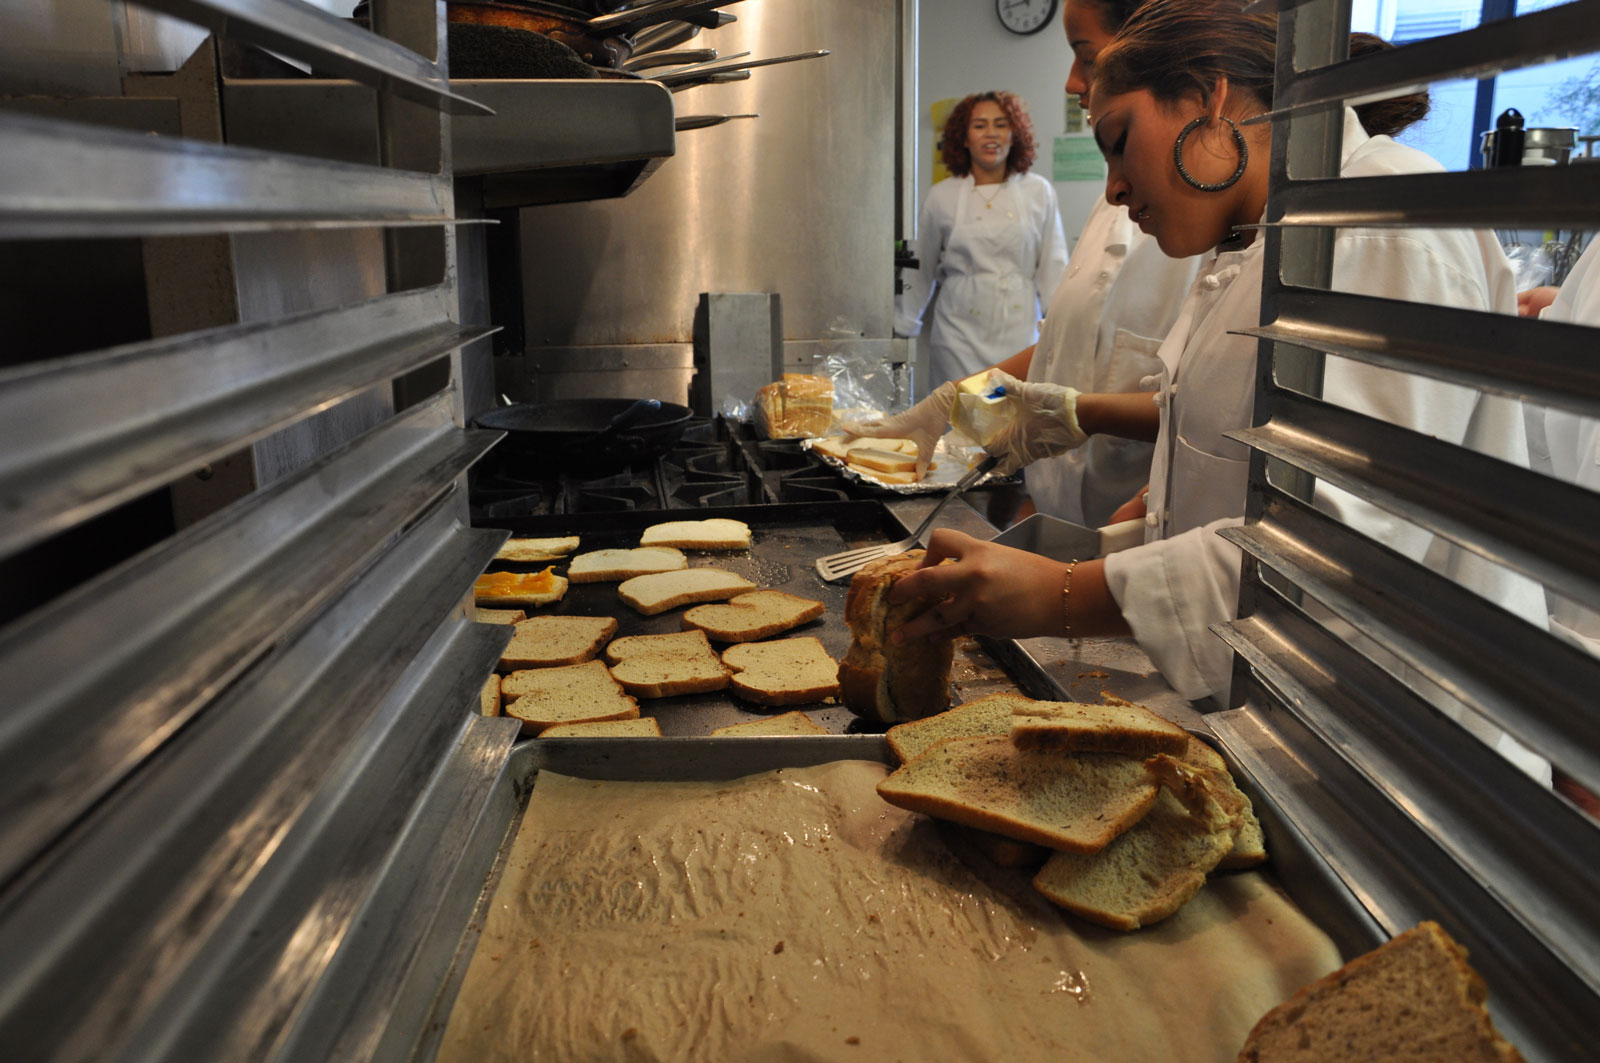 PHOTOS: O'Connell Students Get in the Kitchen